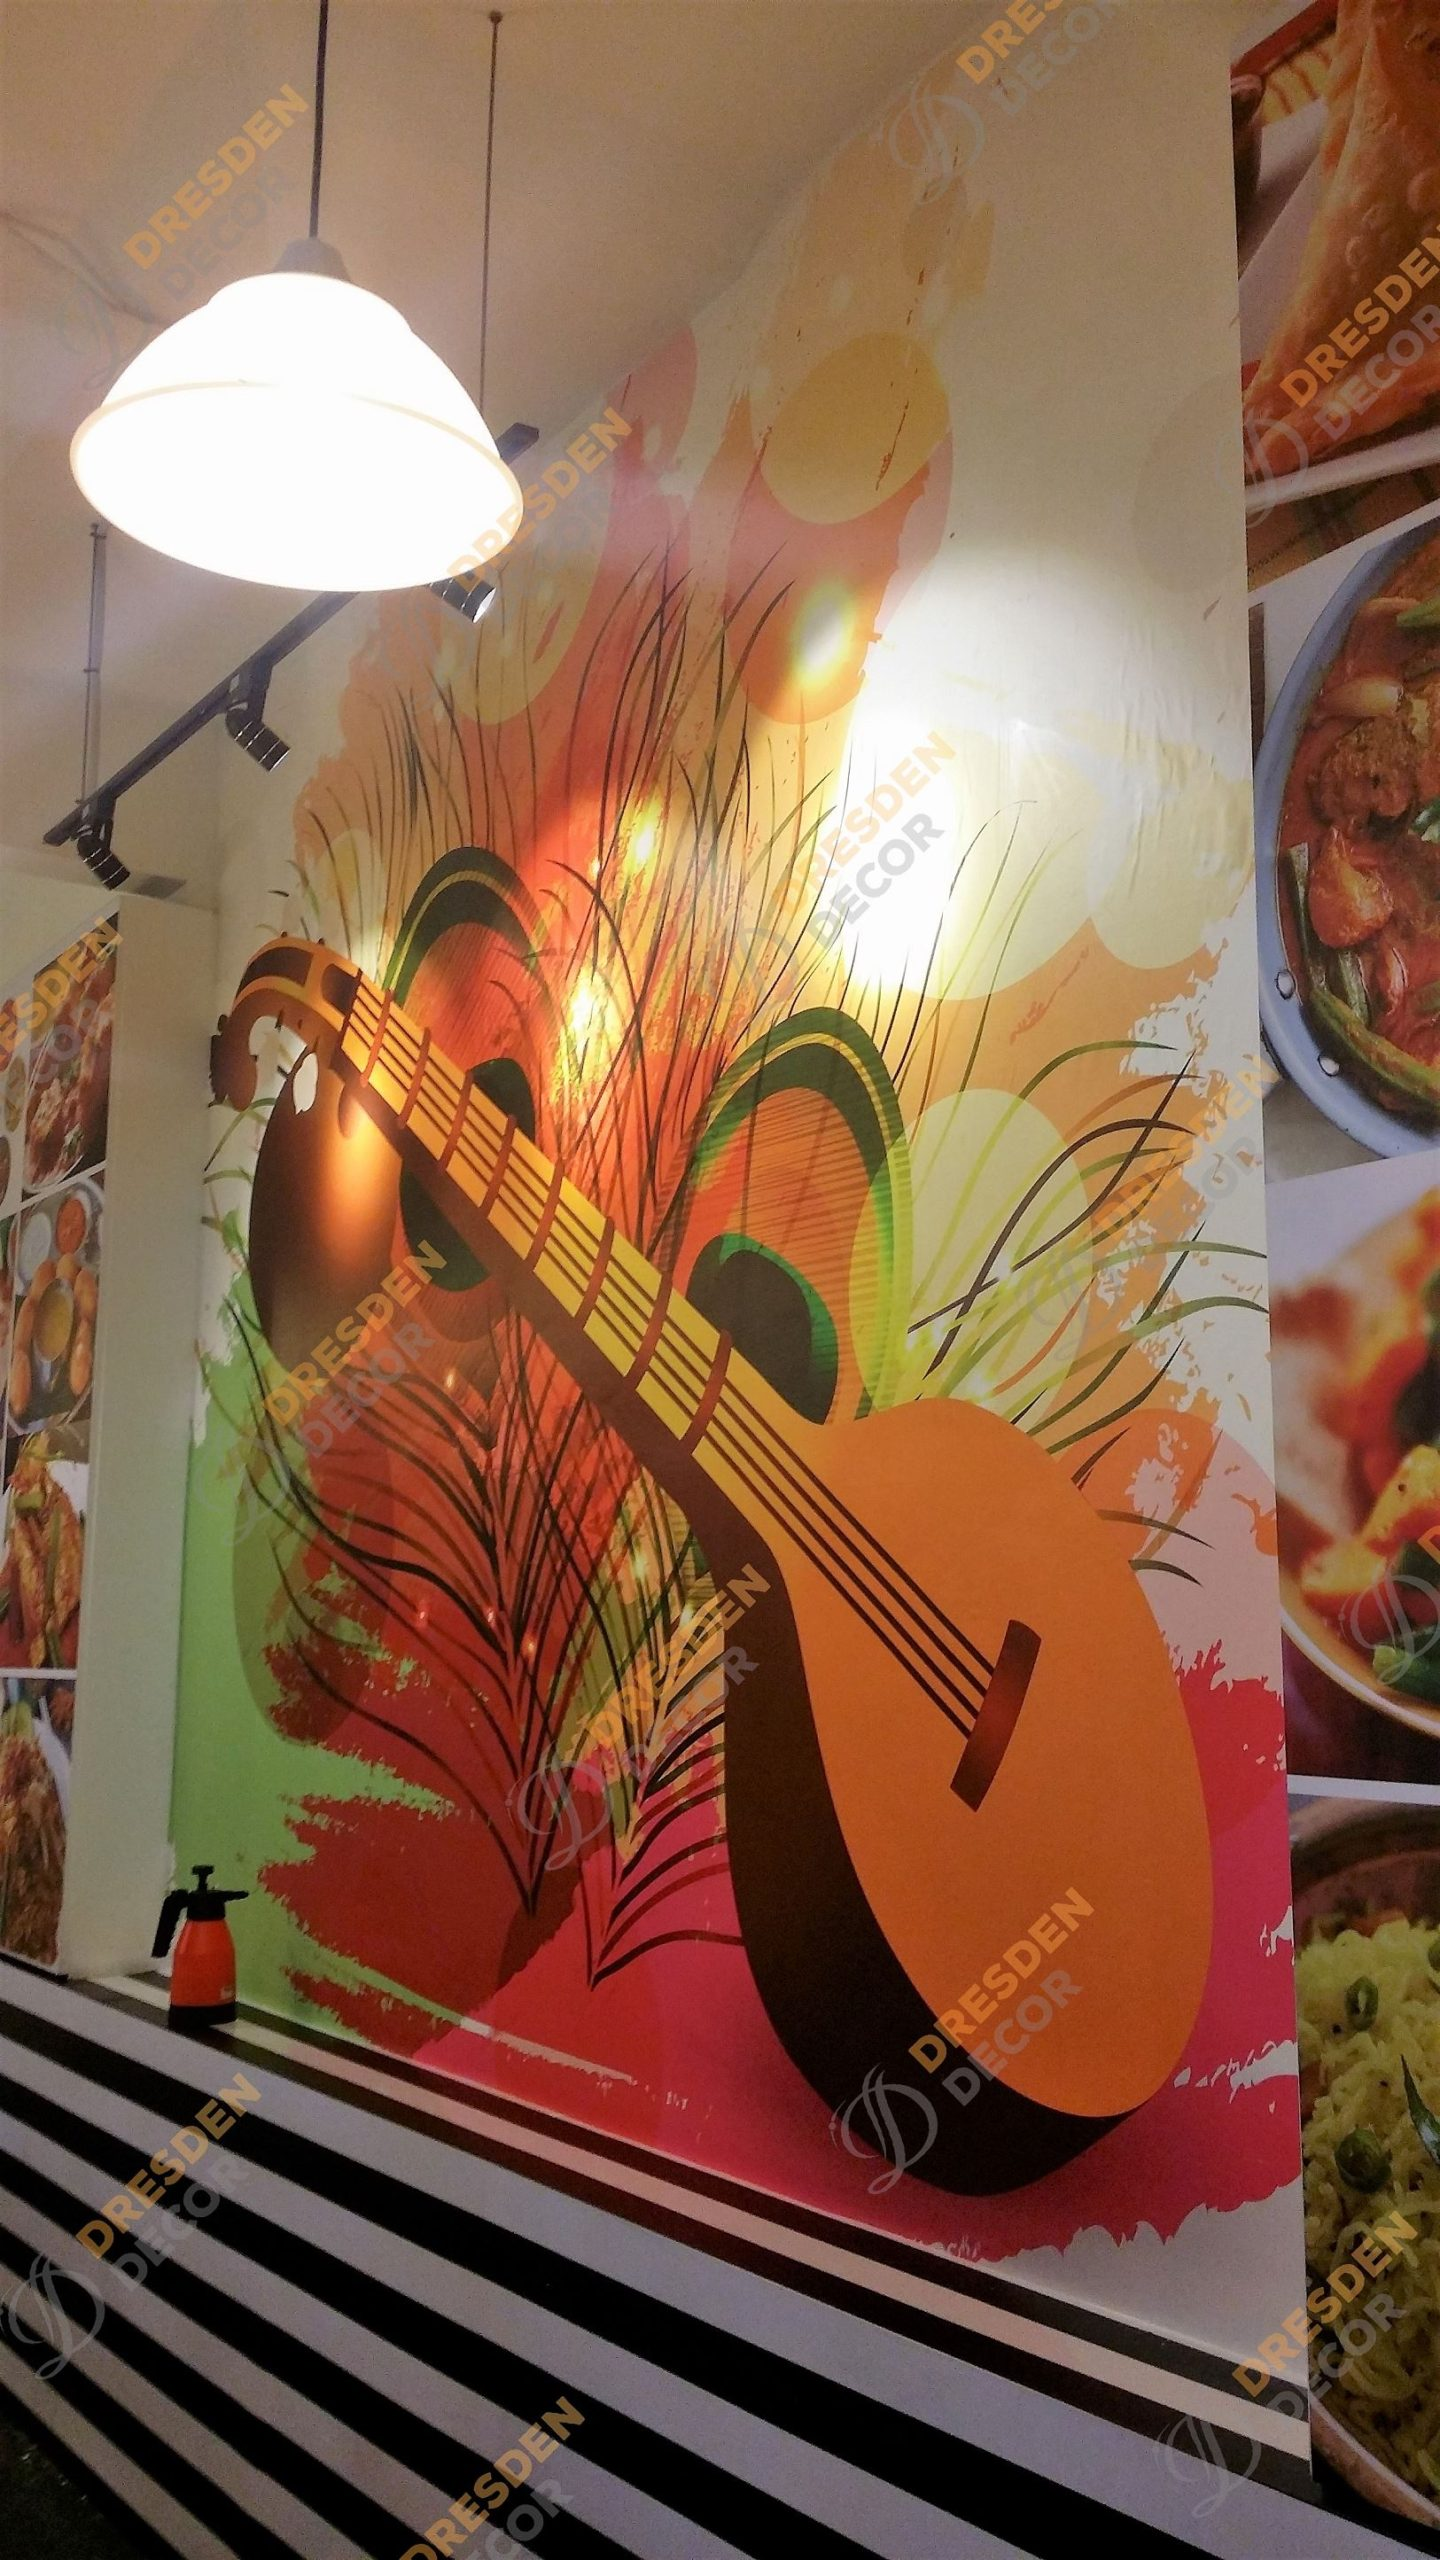 Thircy Spice Cafe-Customized Mural Wallpaper